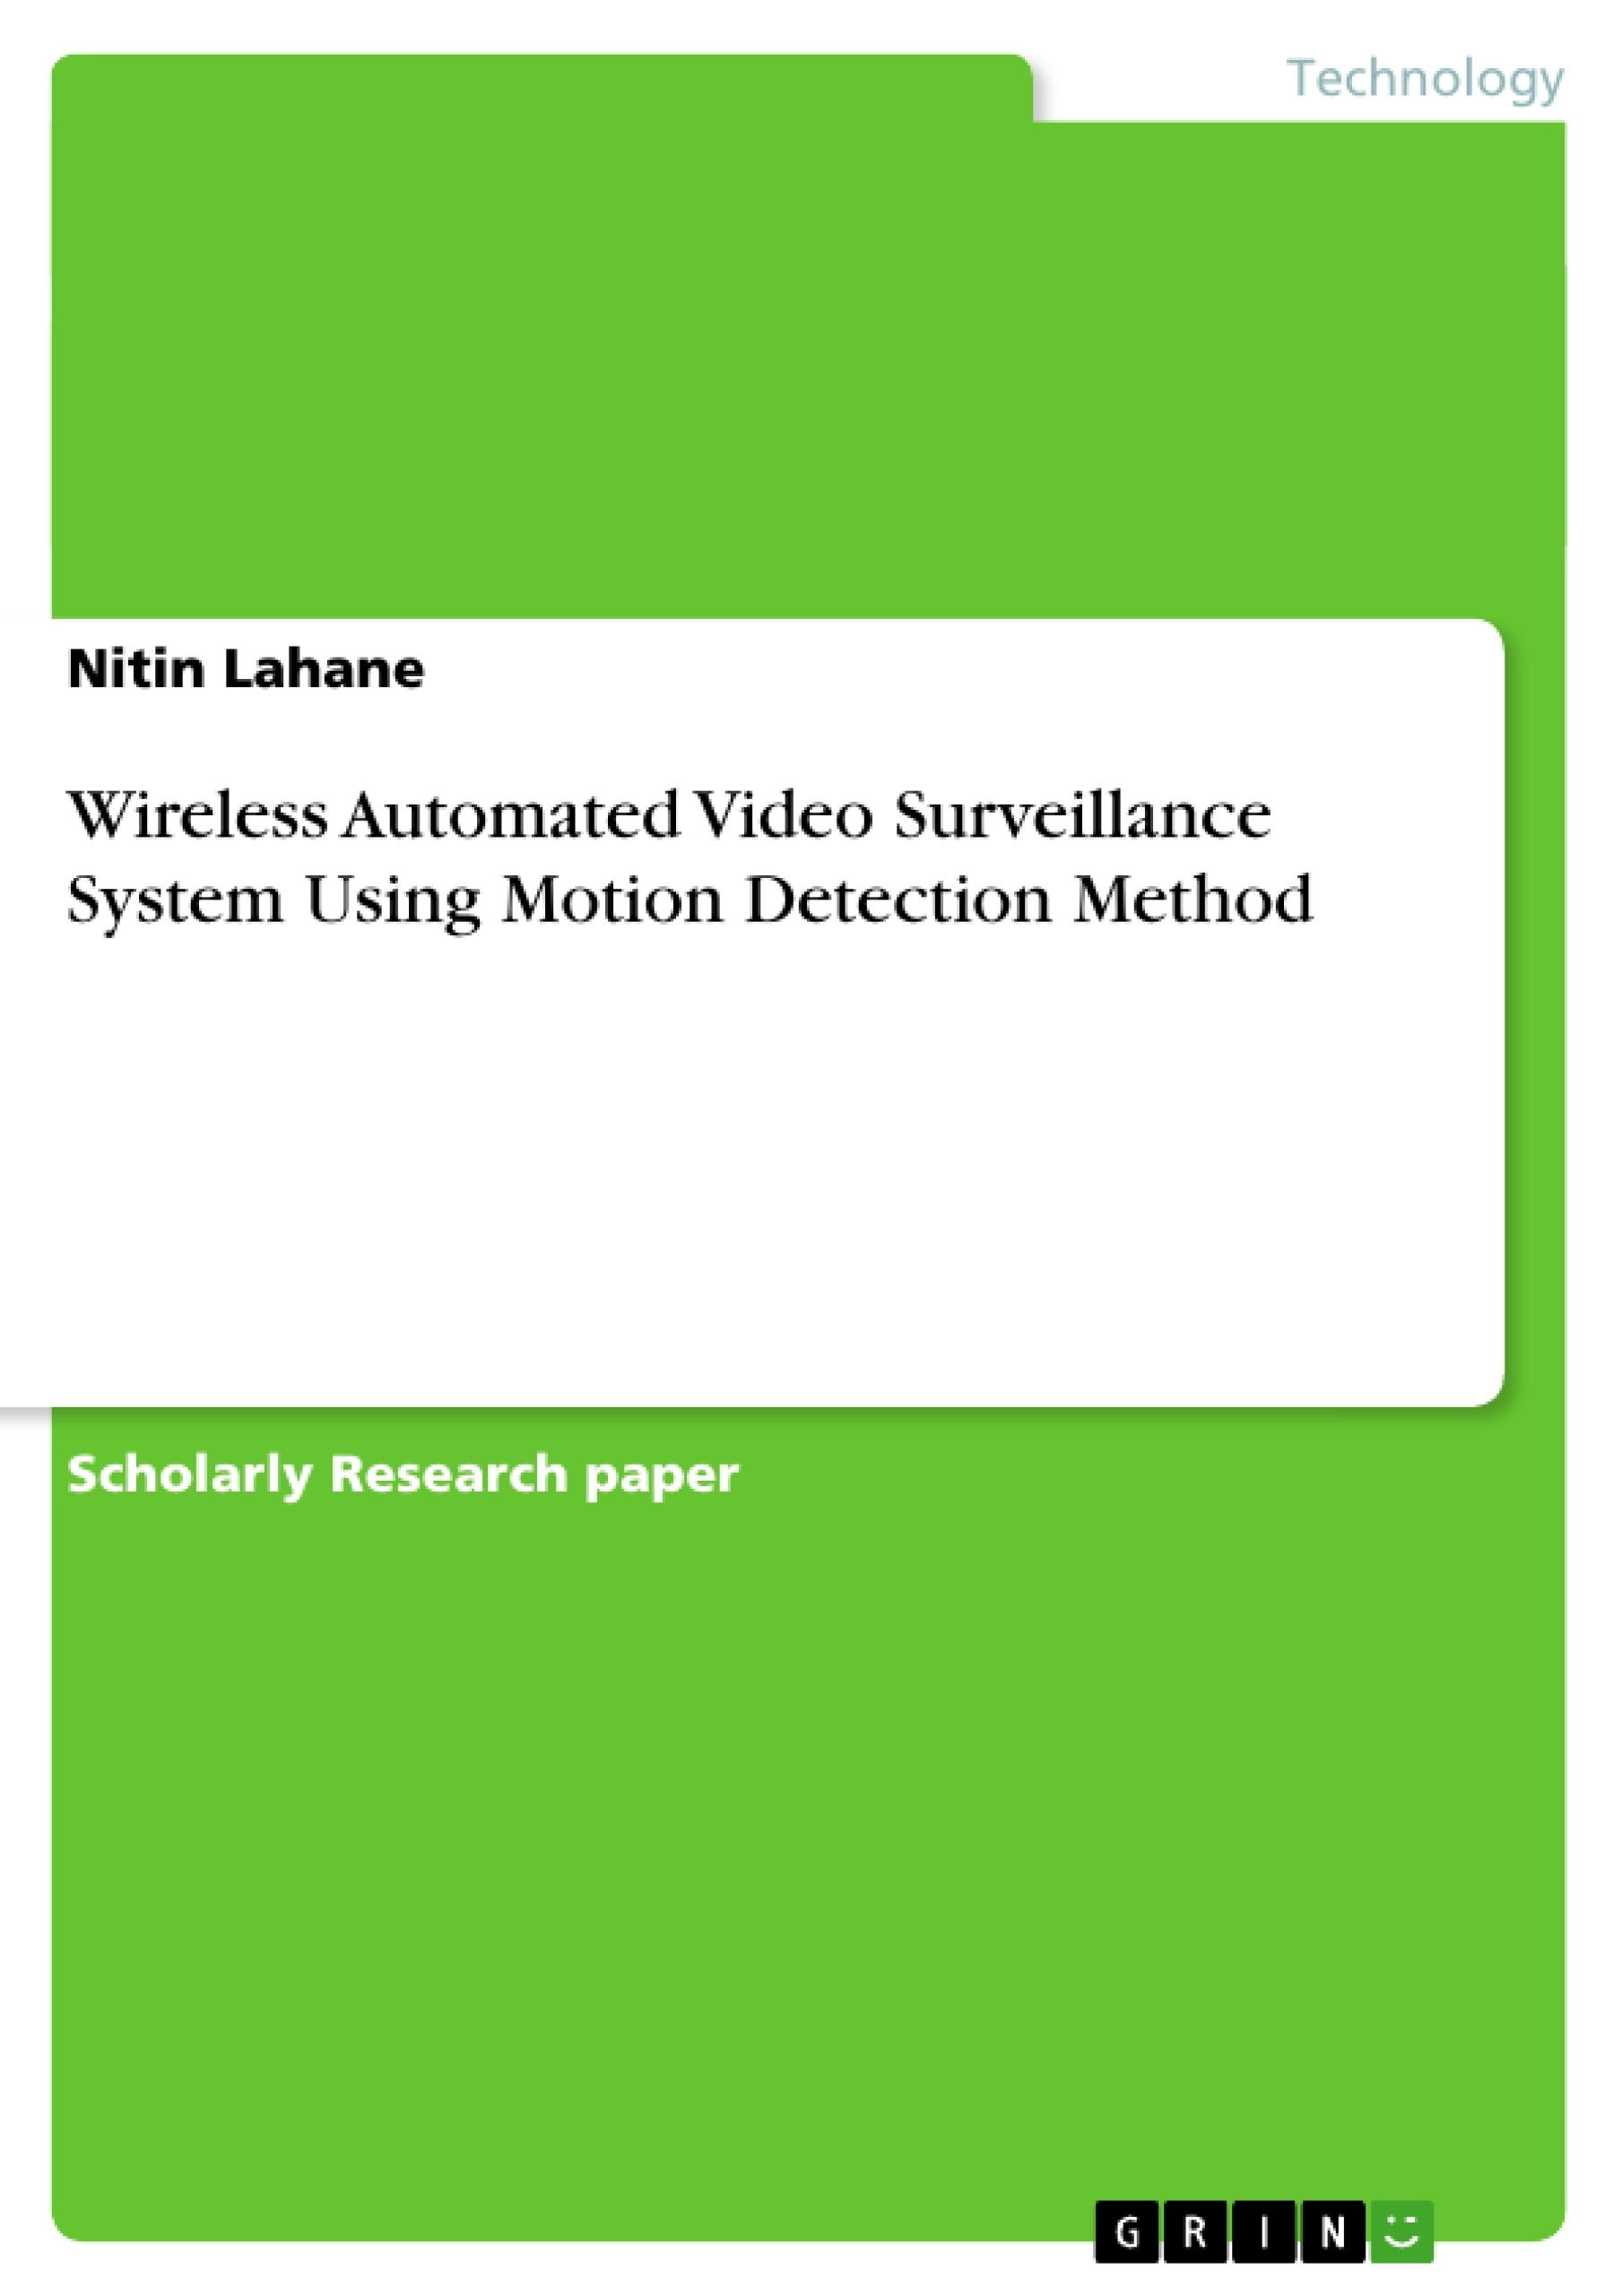 Title: Wireless Automated Video Surveillance System Using Motion Detection Method